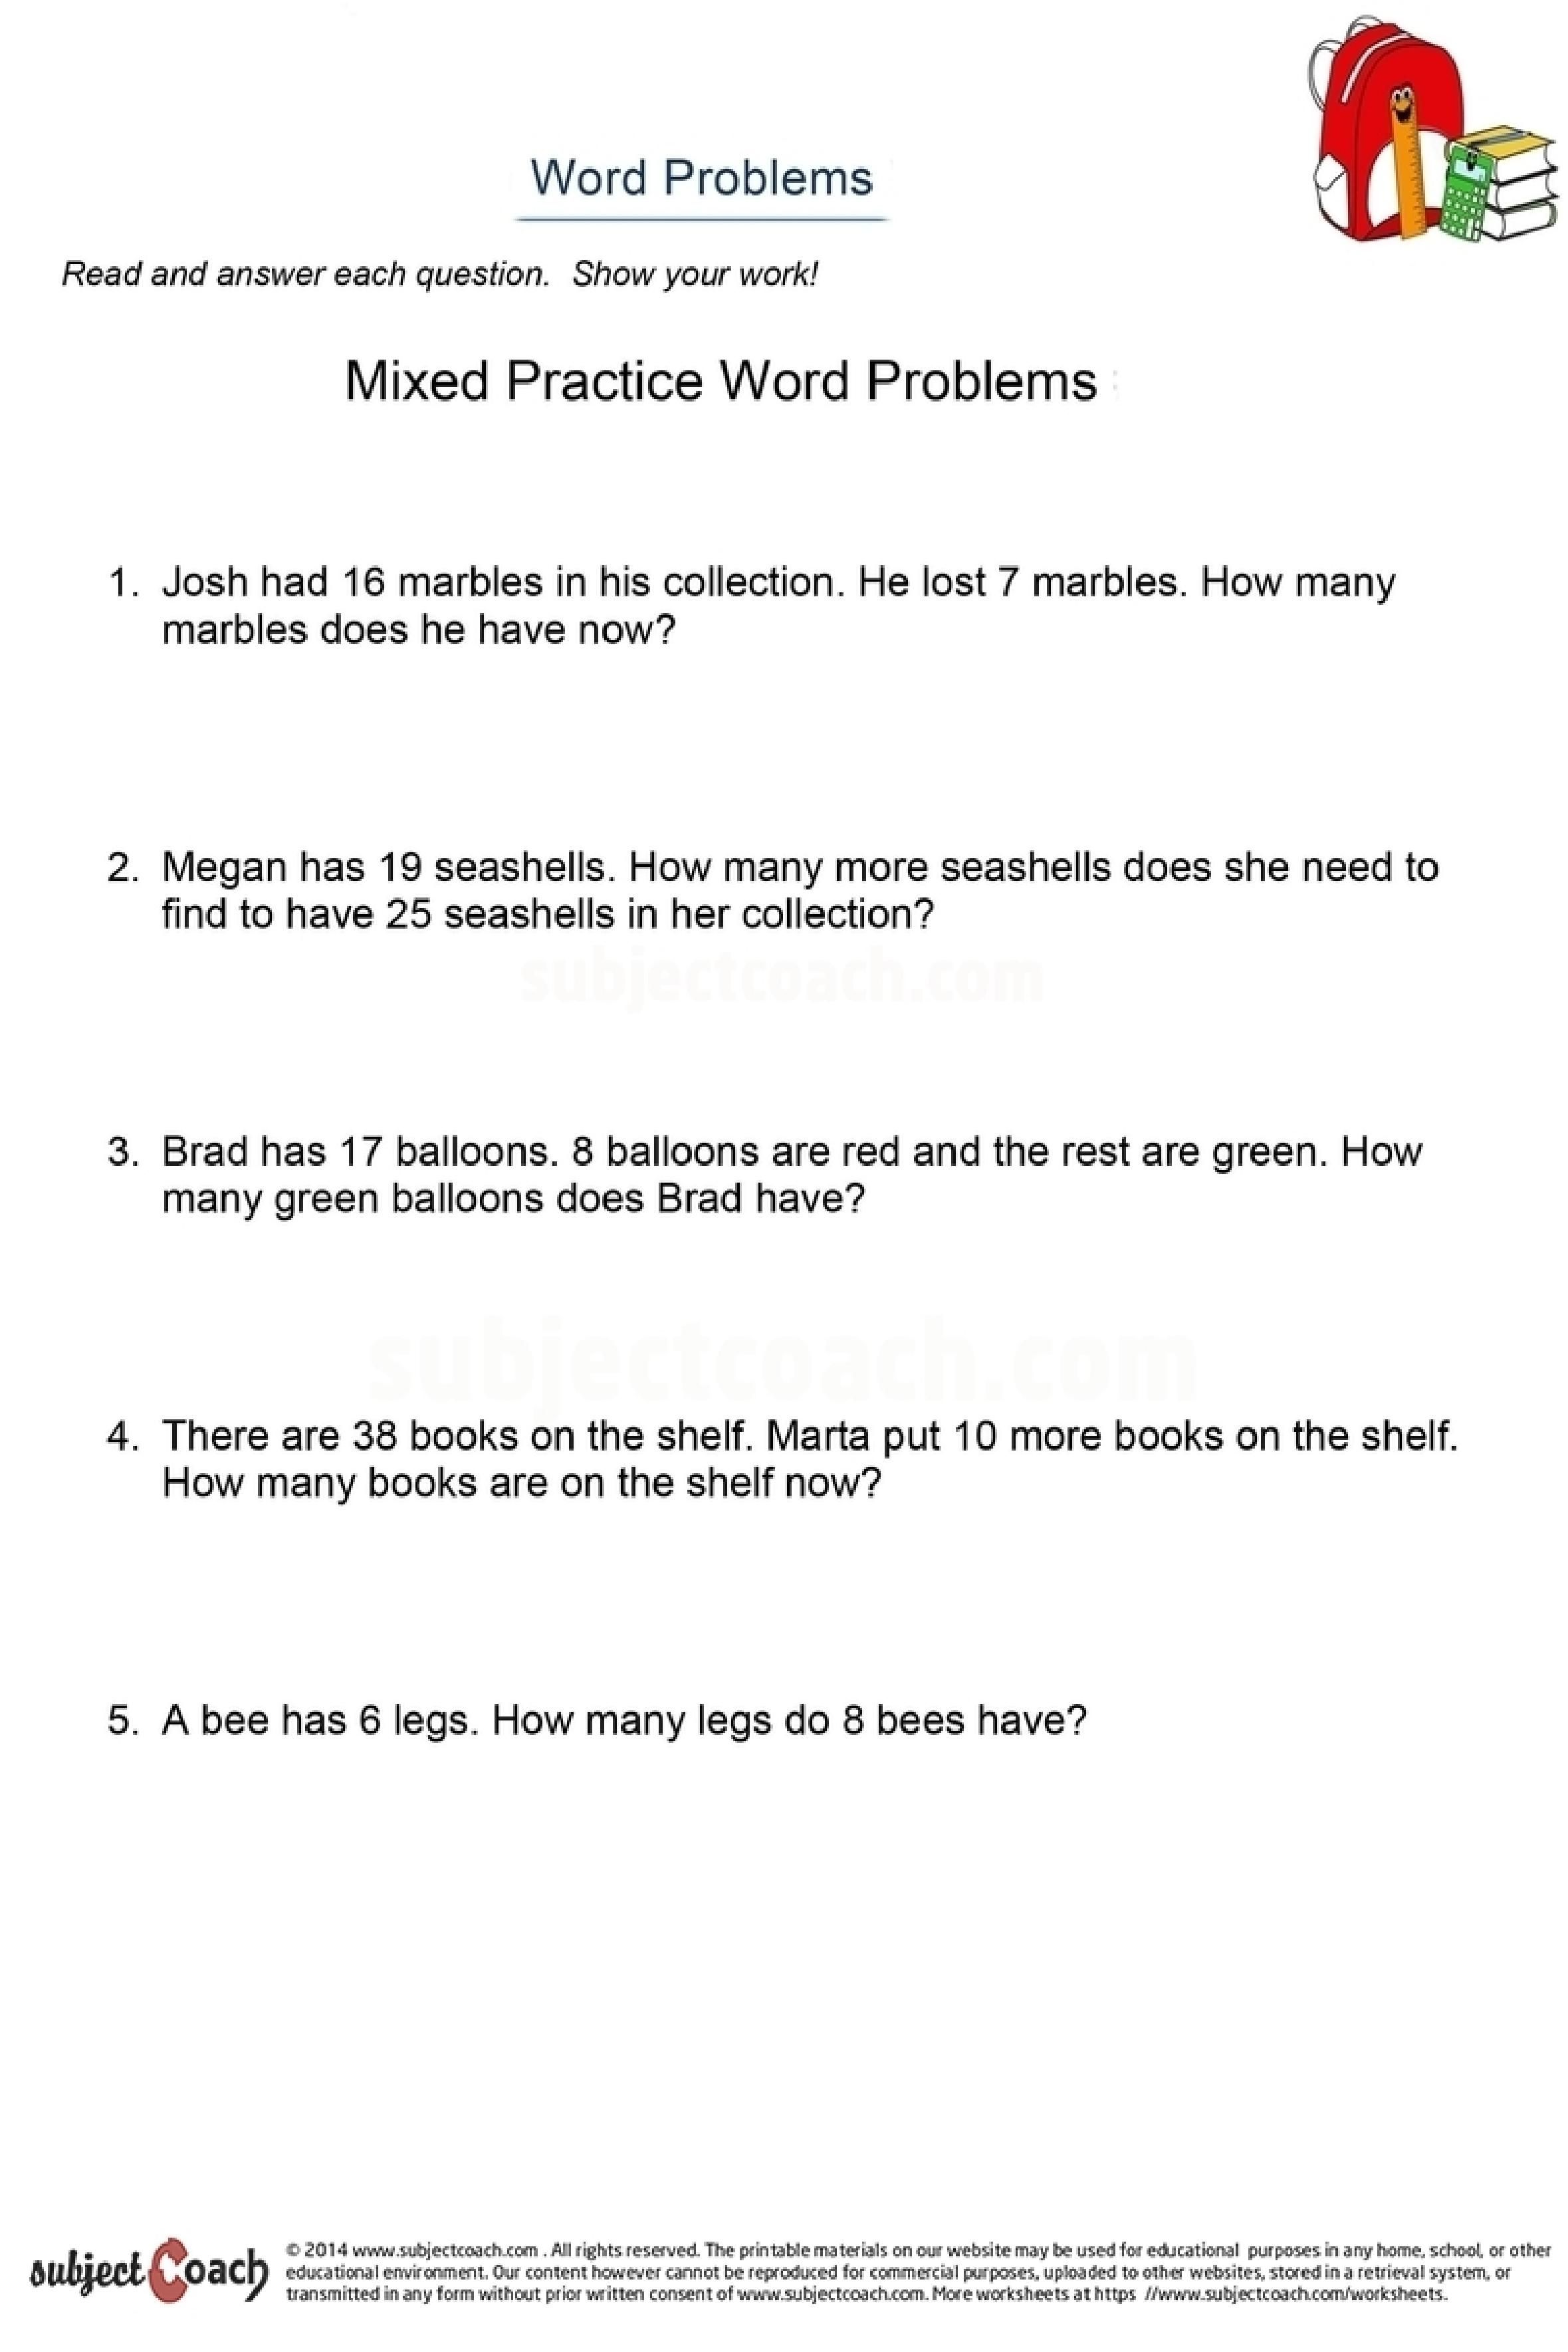 Math Worksheet For Year 2 Students Math Word Problems Help Deepen A Student S Understanding Of Mathematical Concepts And Free Math Elementary School Math Math